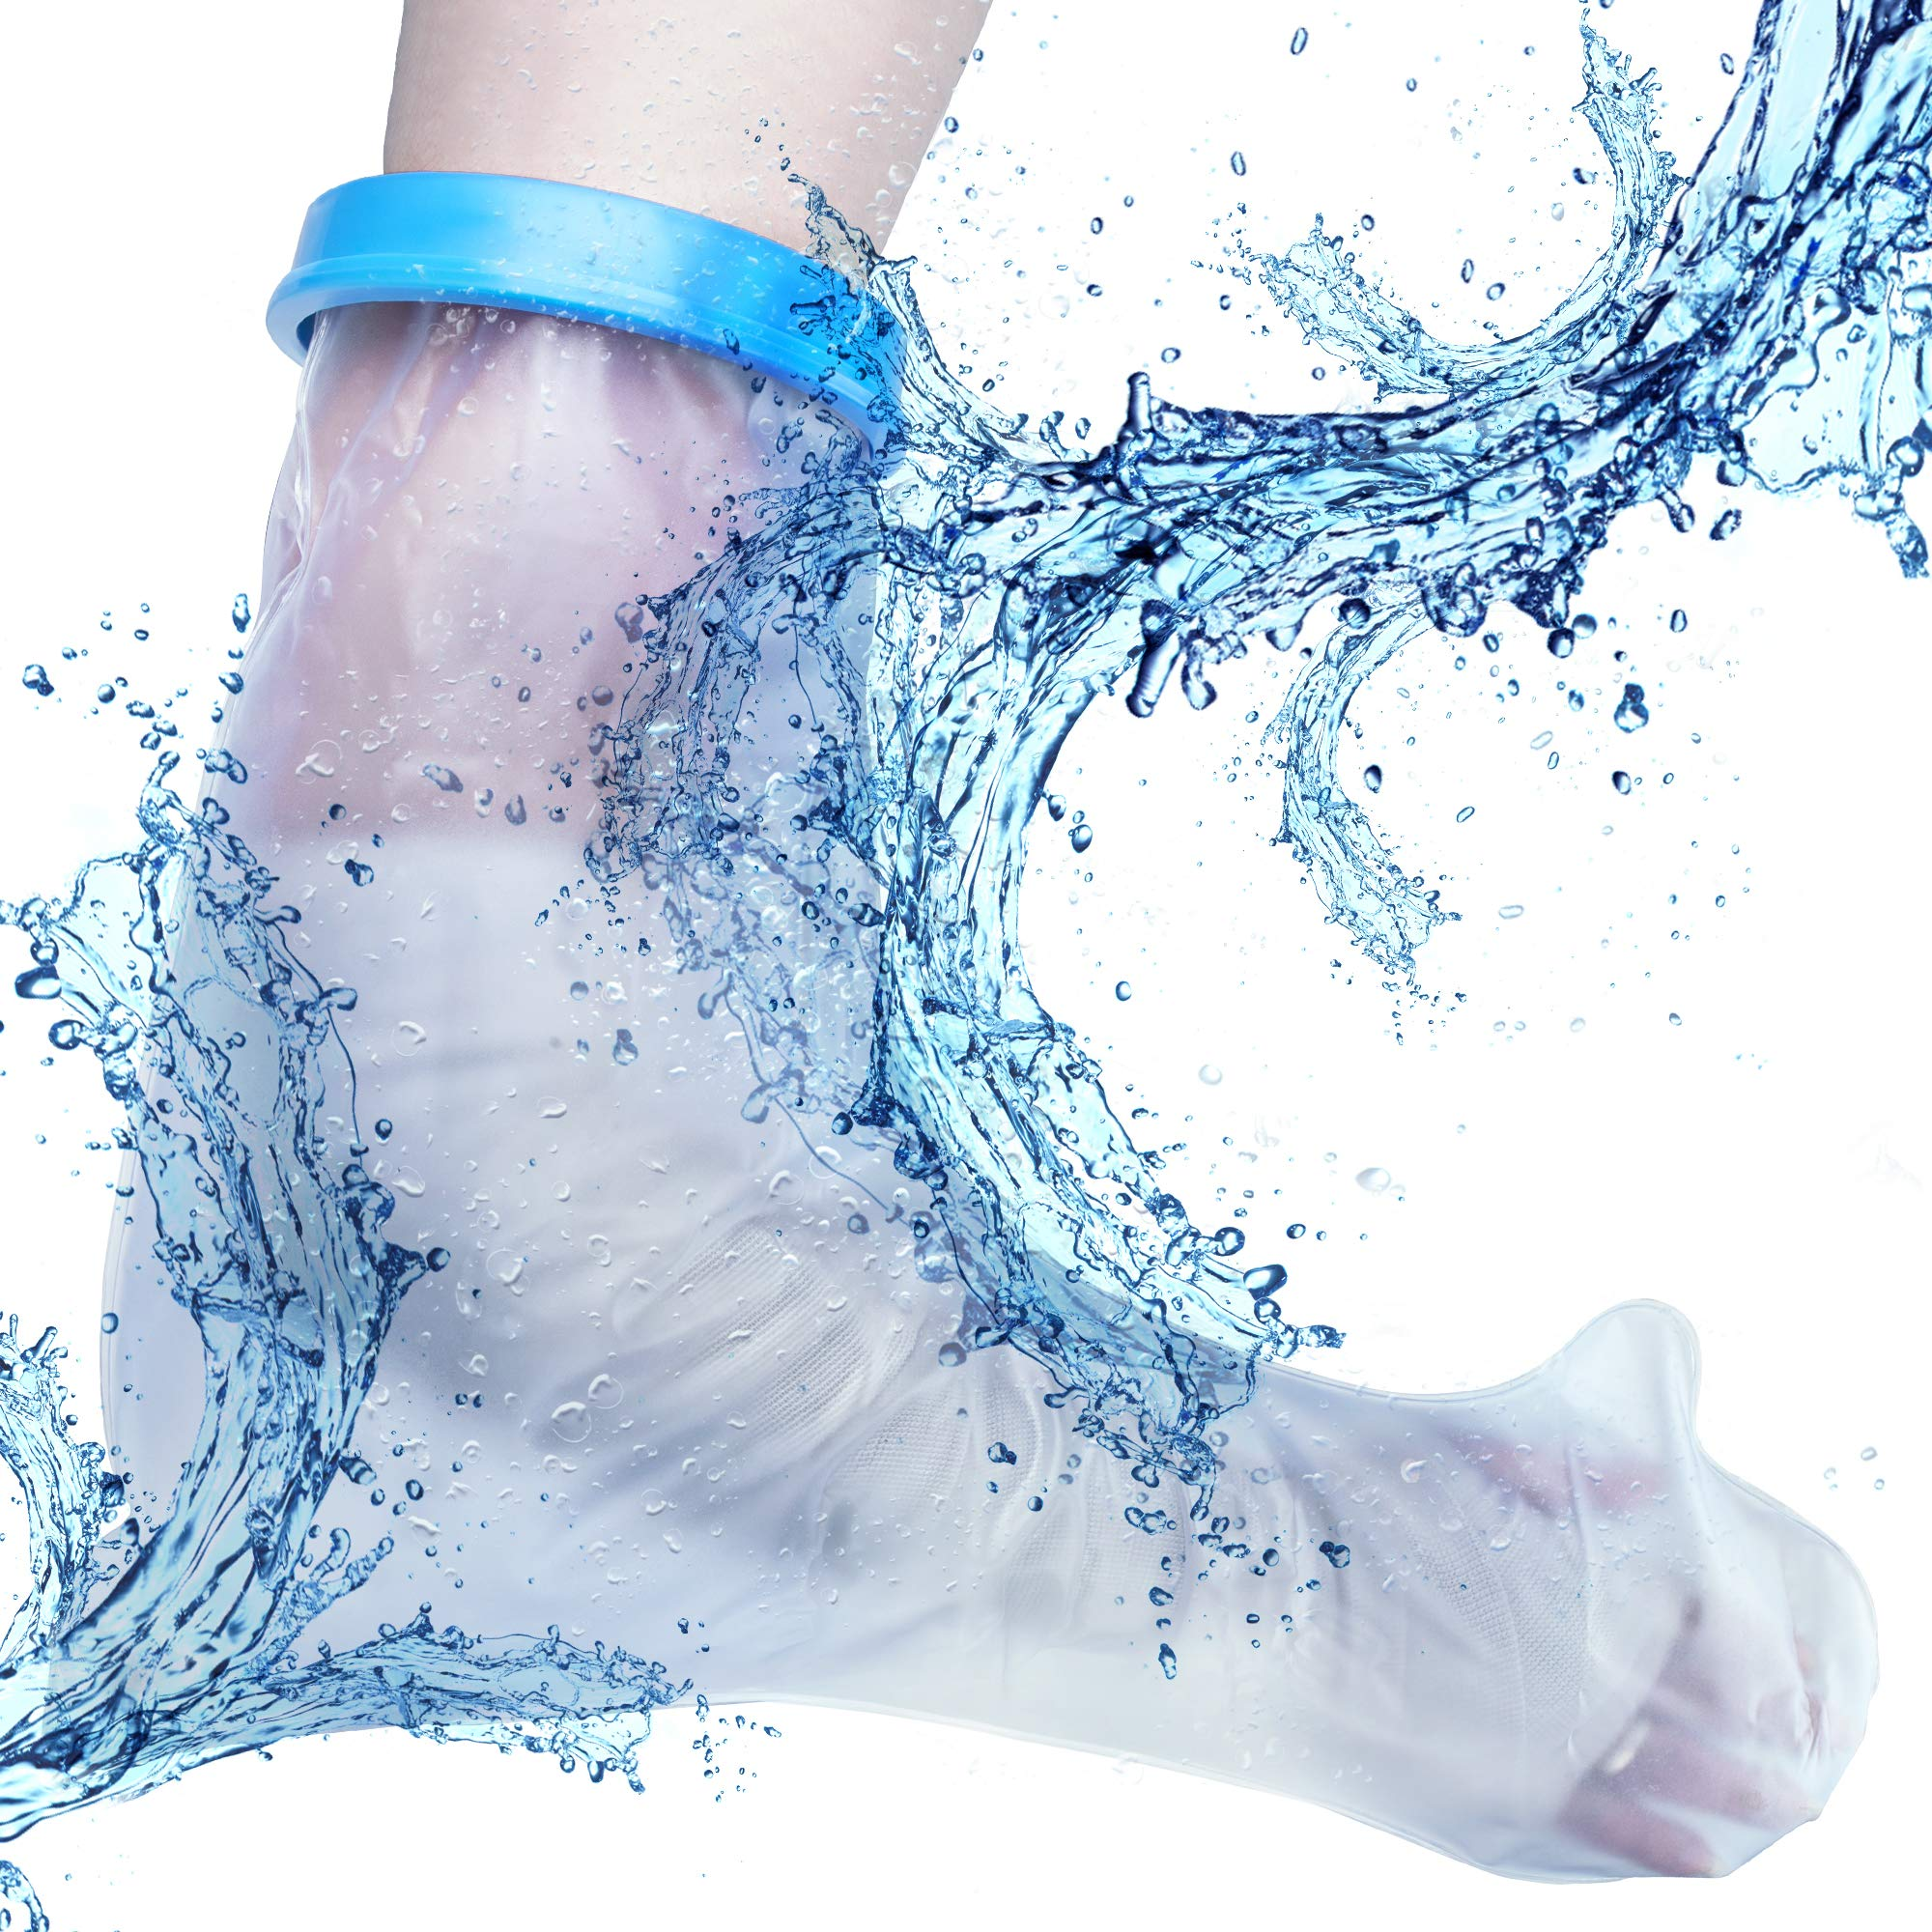 Supply Waterproof Sealed Cast Bandage Protector Wound Fracture Hand Arm Cover For Shower For Adult Short Arm Hand Foot Skin Care Tool Handsome Appearance Bath & Shower Bath